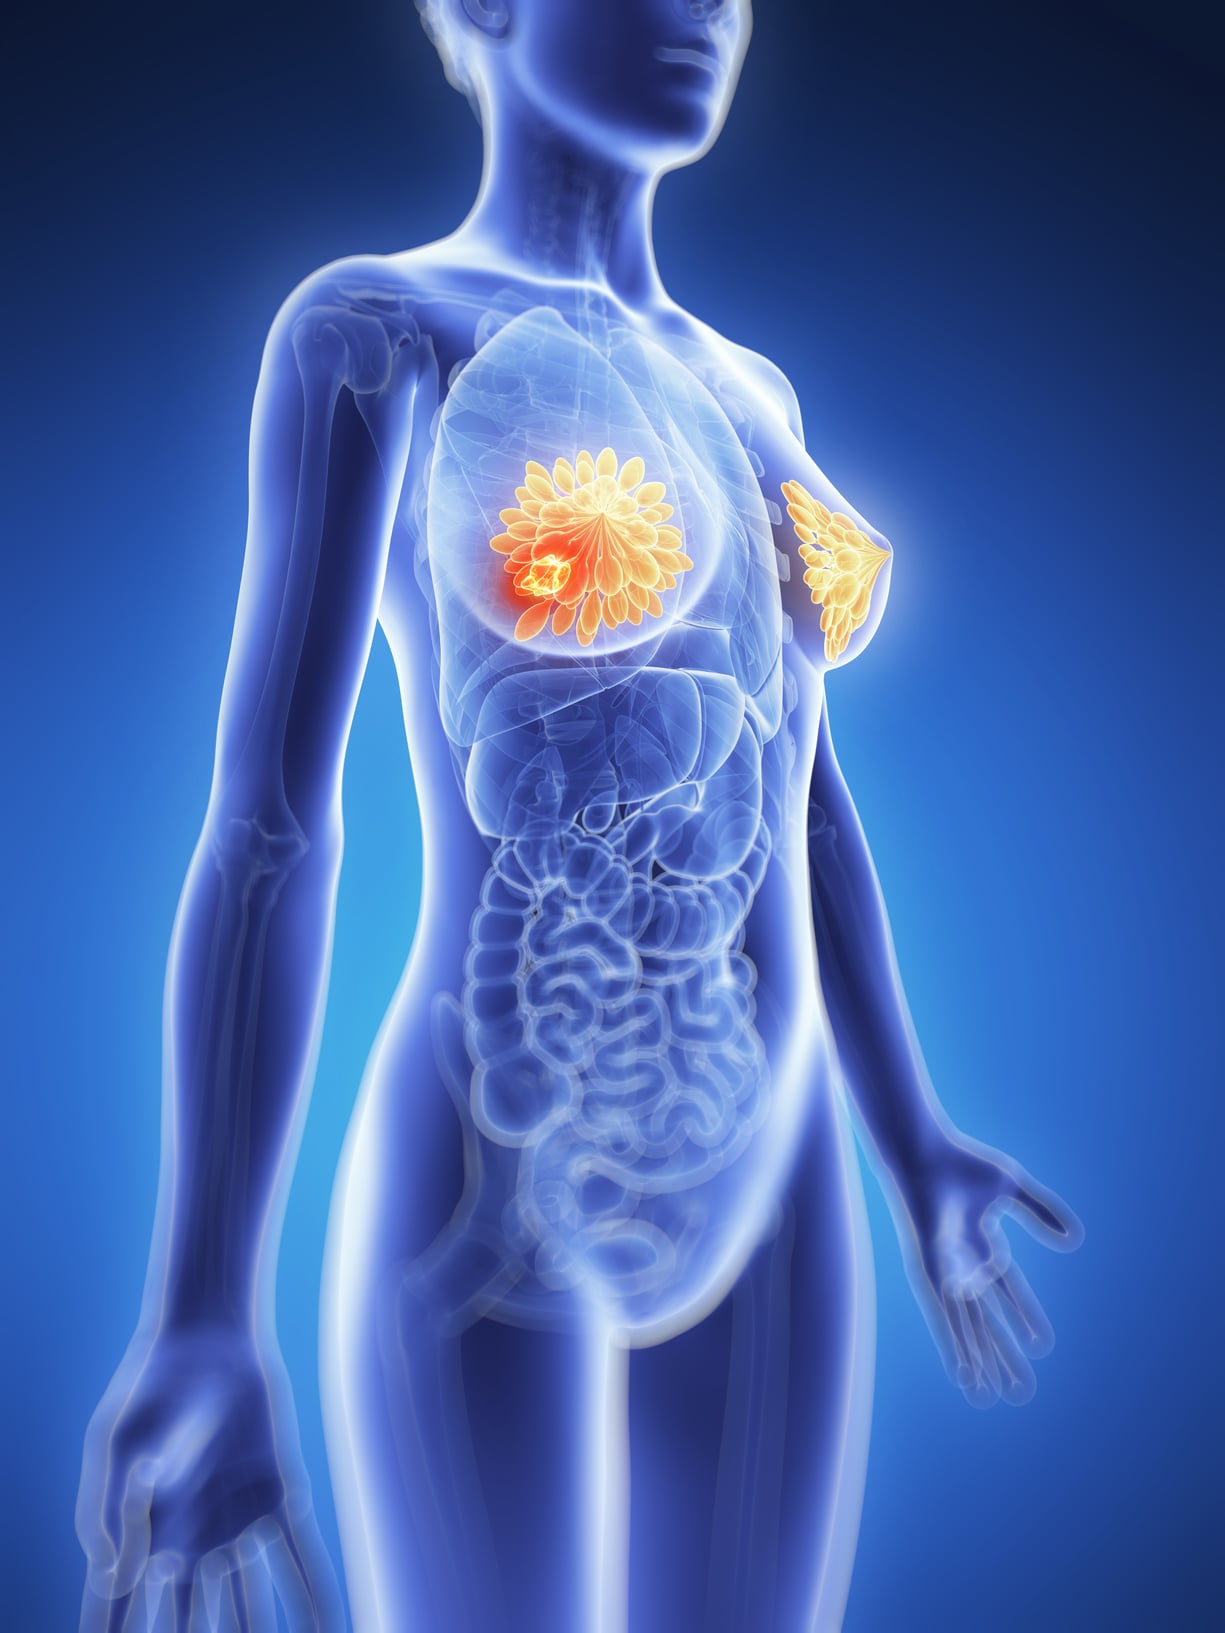 3d rendered illustration - breast cancer